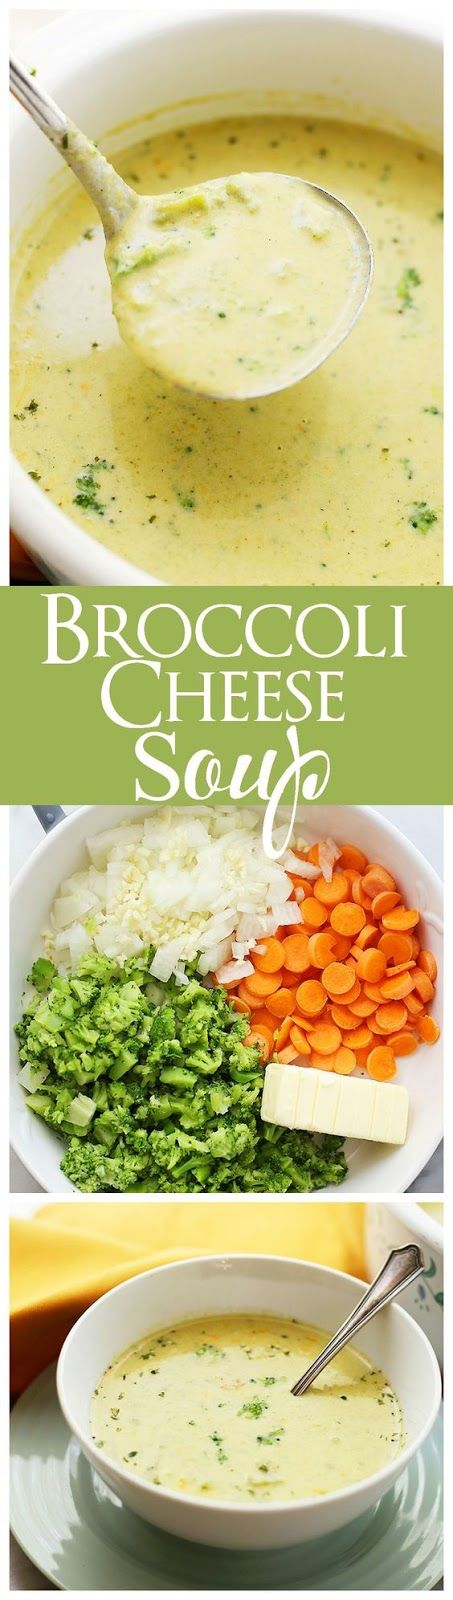 Broccoli Cheese Soup | Food And Cake Recipes